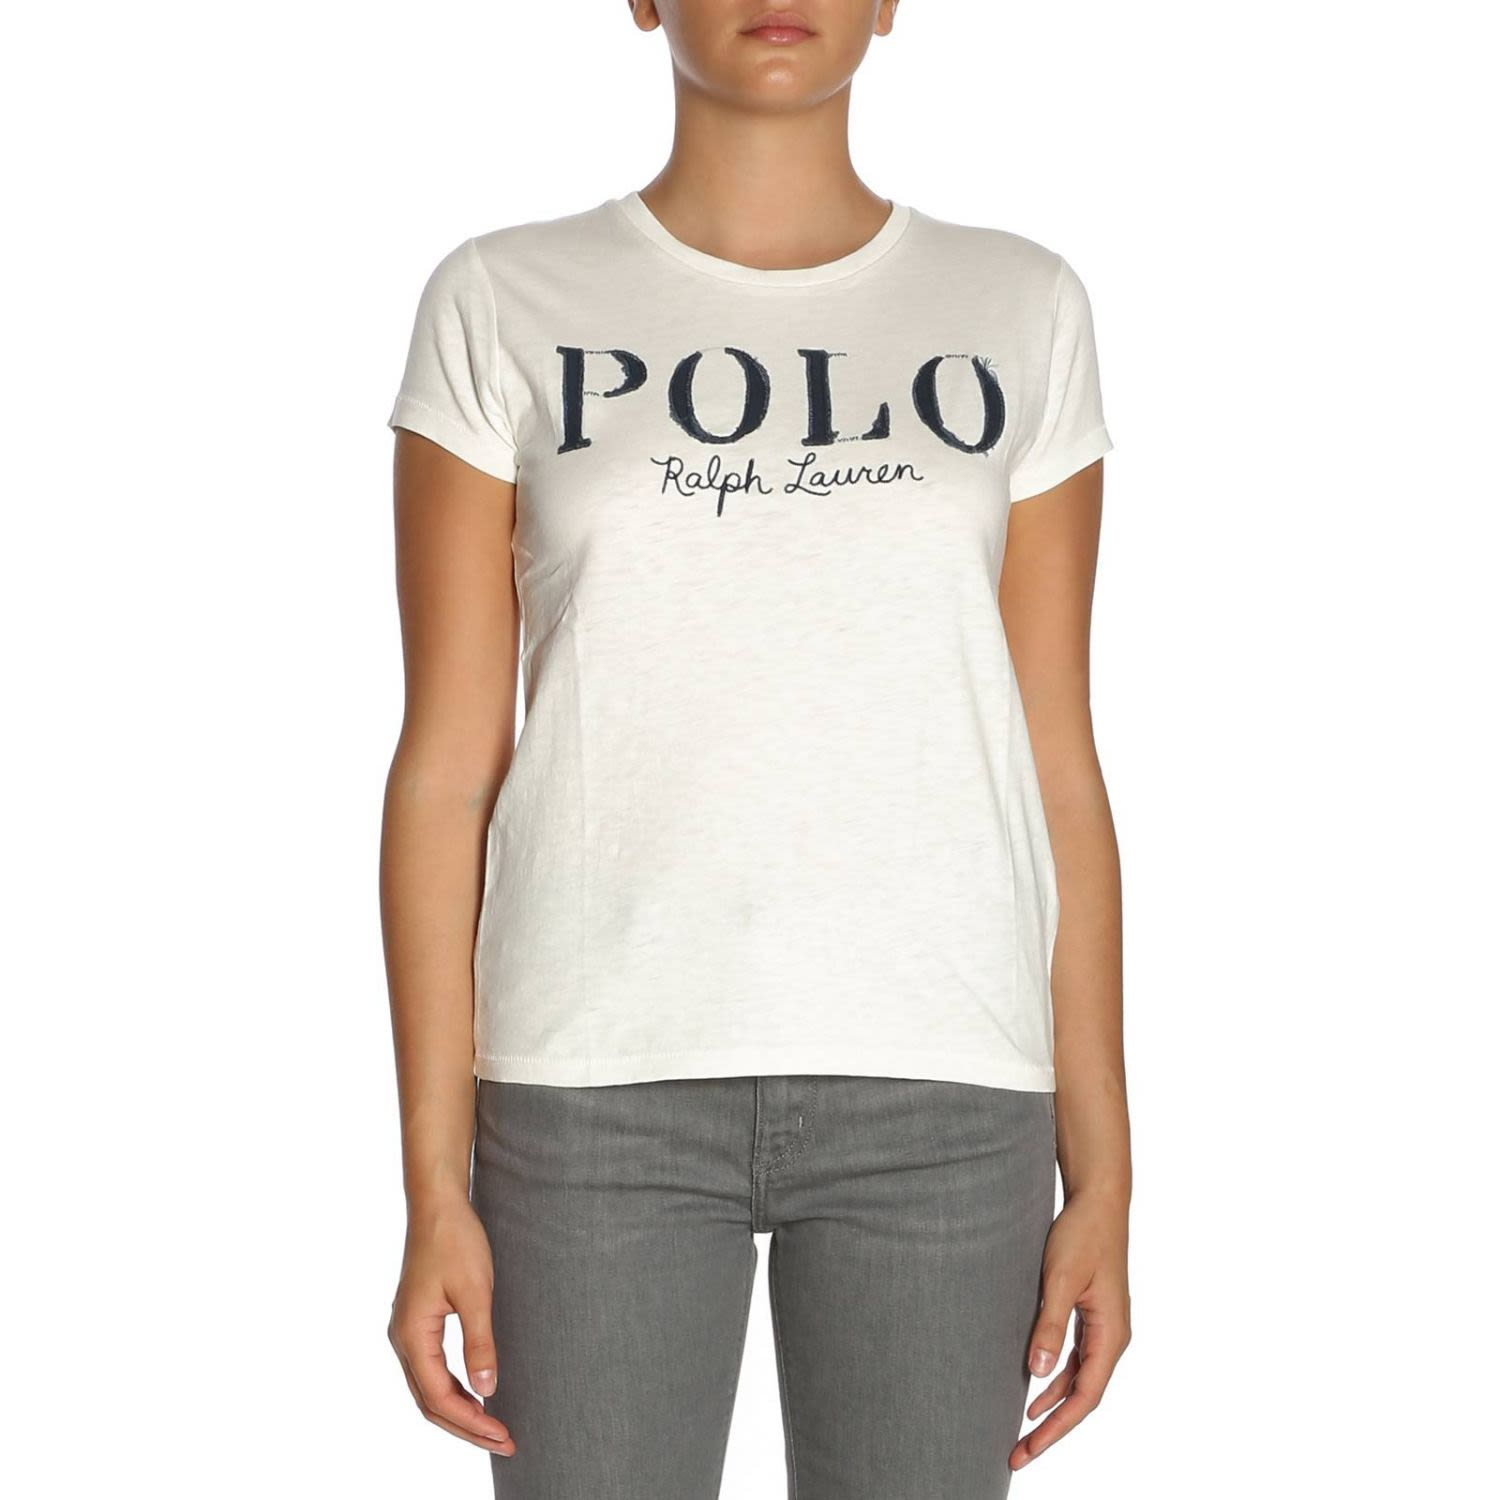 Polo Ralph Lauren T-shirt T-shirt Women Polo Ralph Lauren